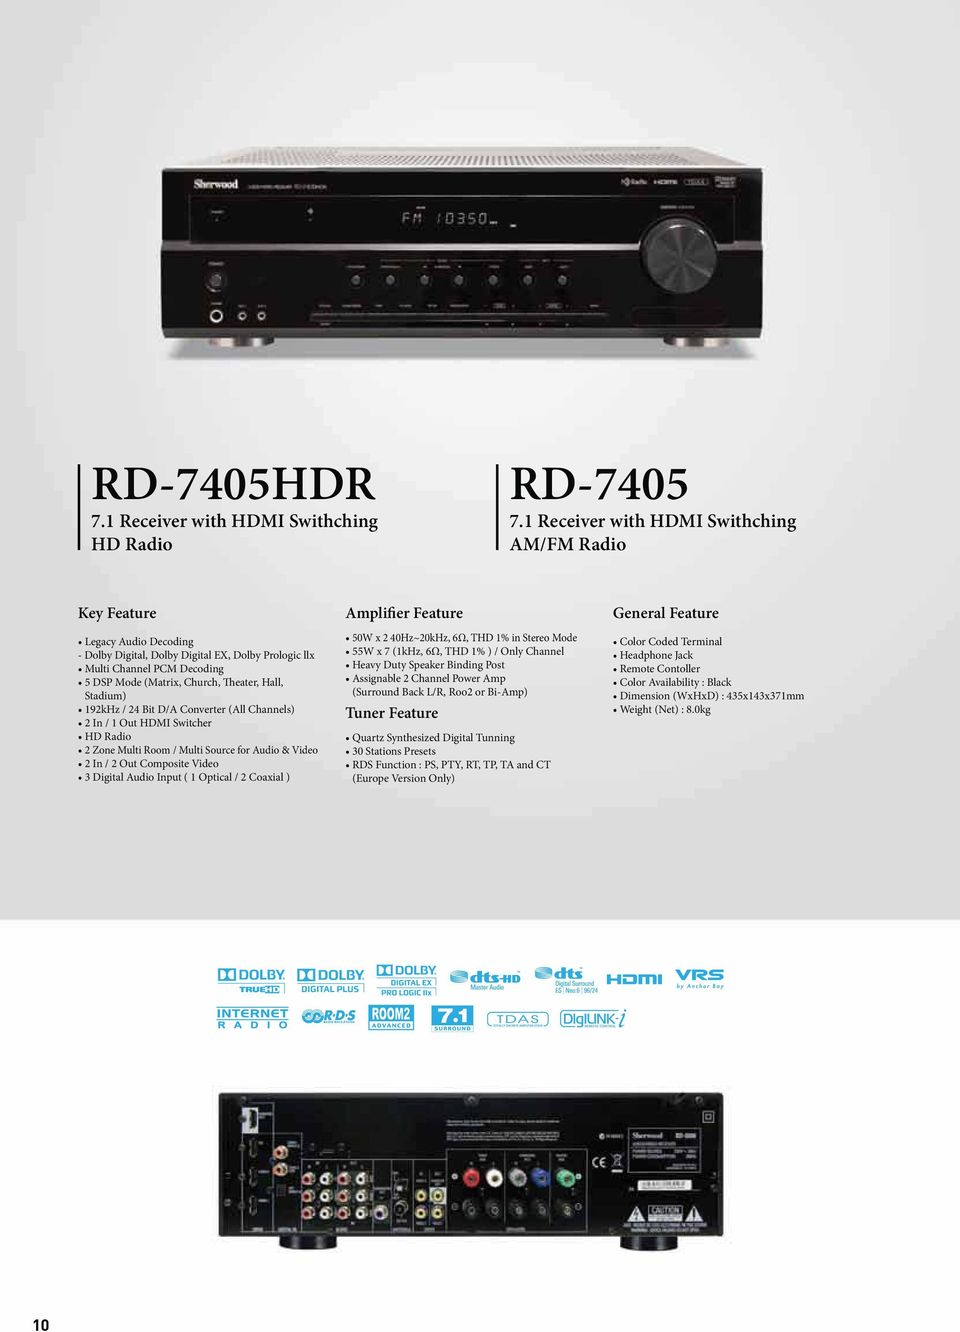 1 Receiver with HDMI Swithching AM/FM Radio - Dolby